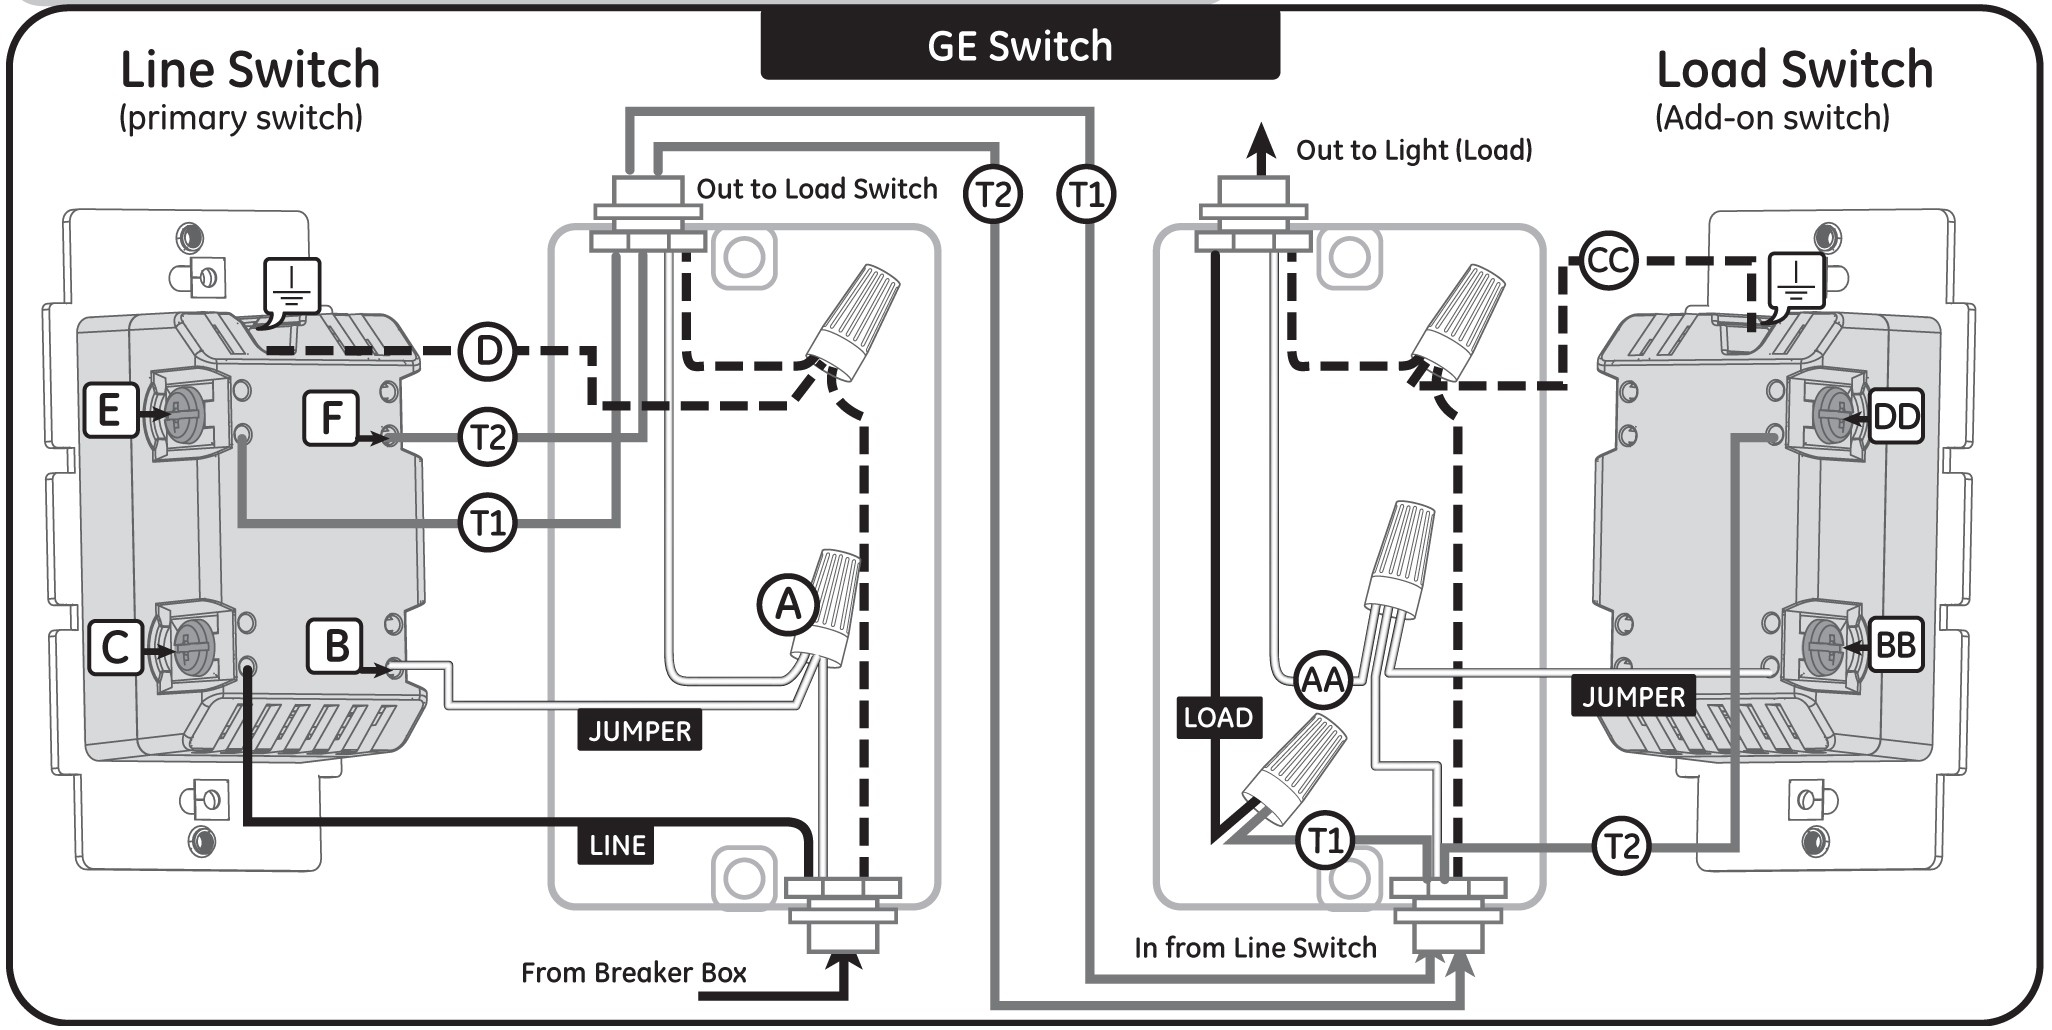 3 Way Switch Wiring Diagram For Ge Z Wave Auto Electrical Maytag Electric Gas Dryer Model Mdg7057aww